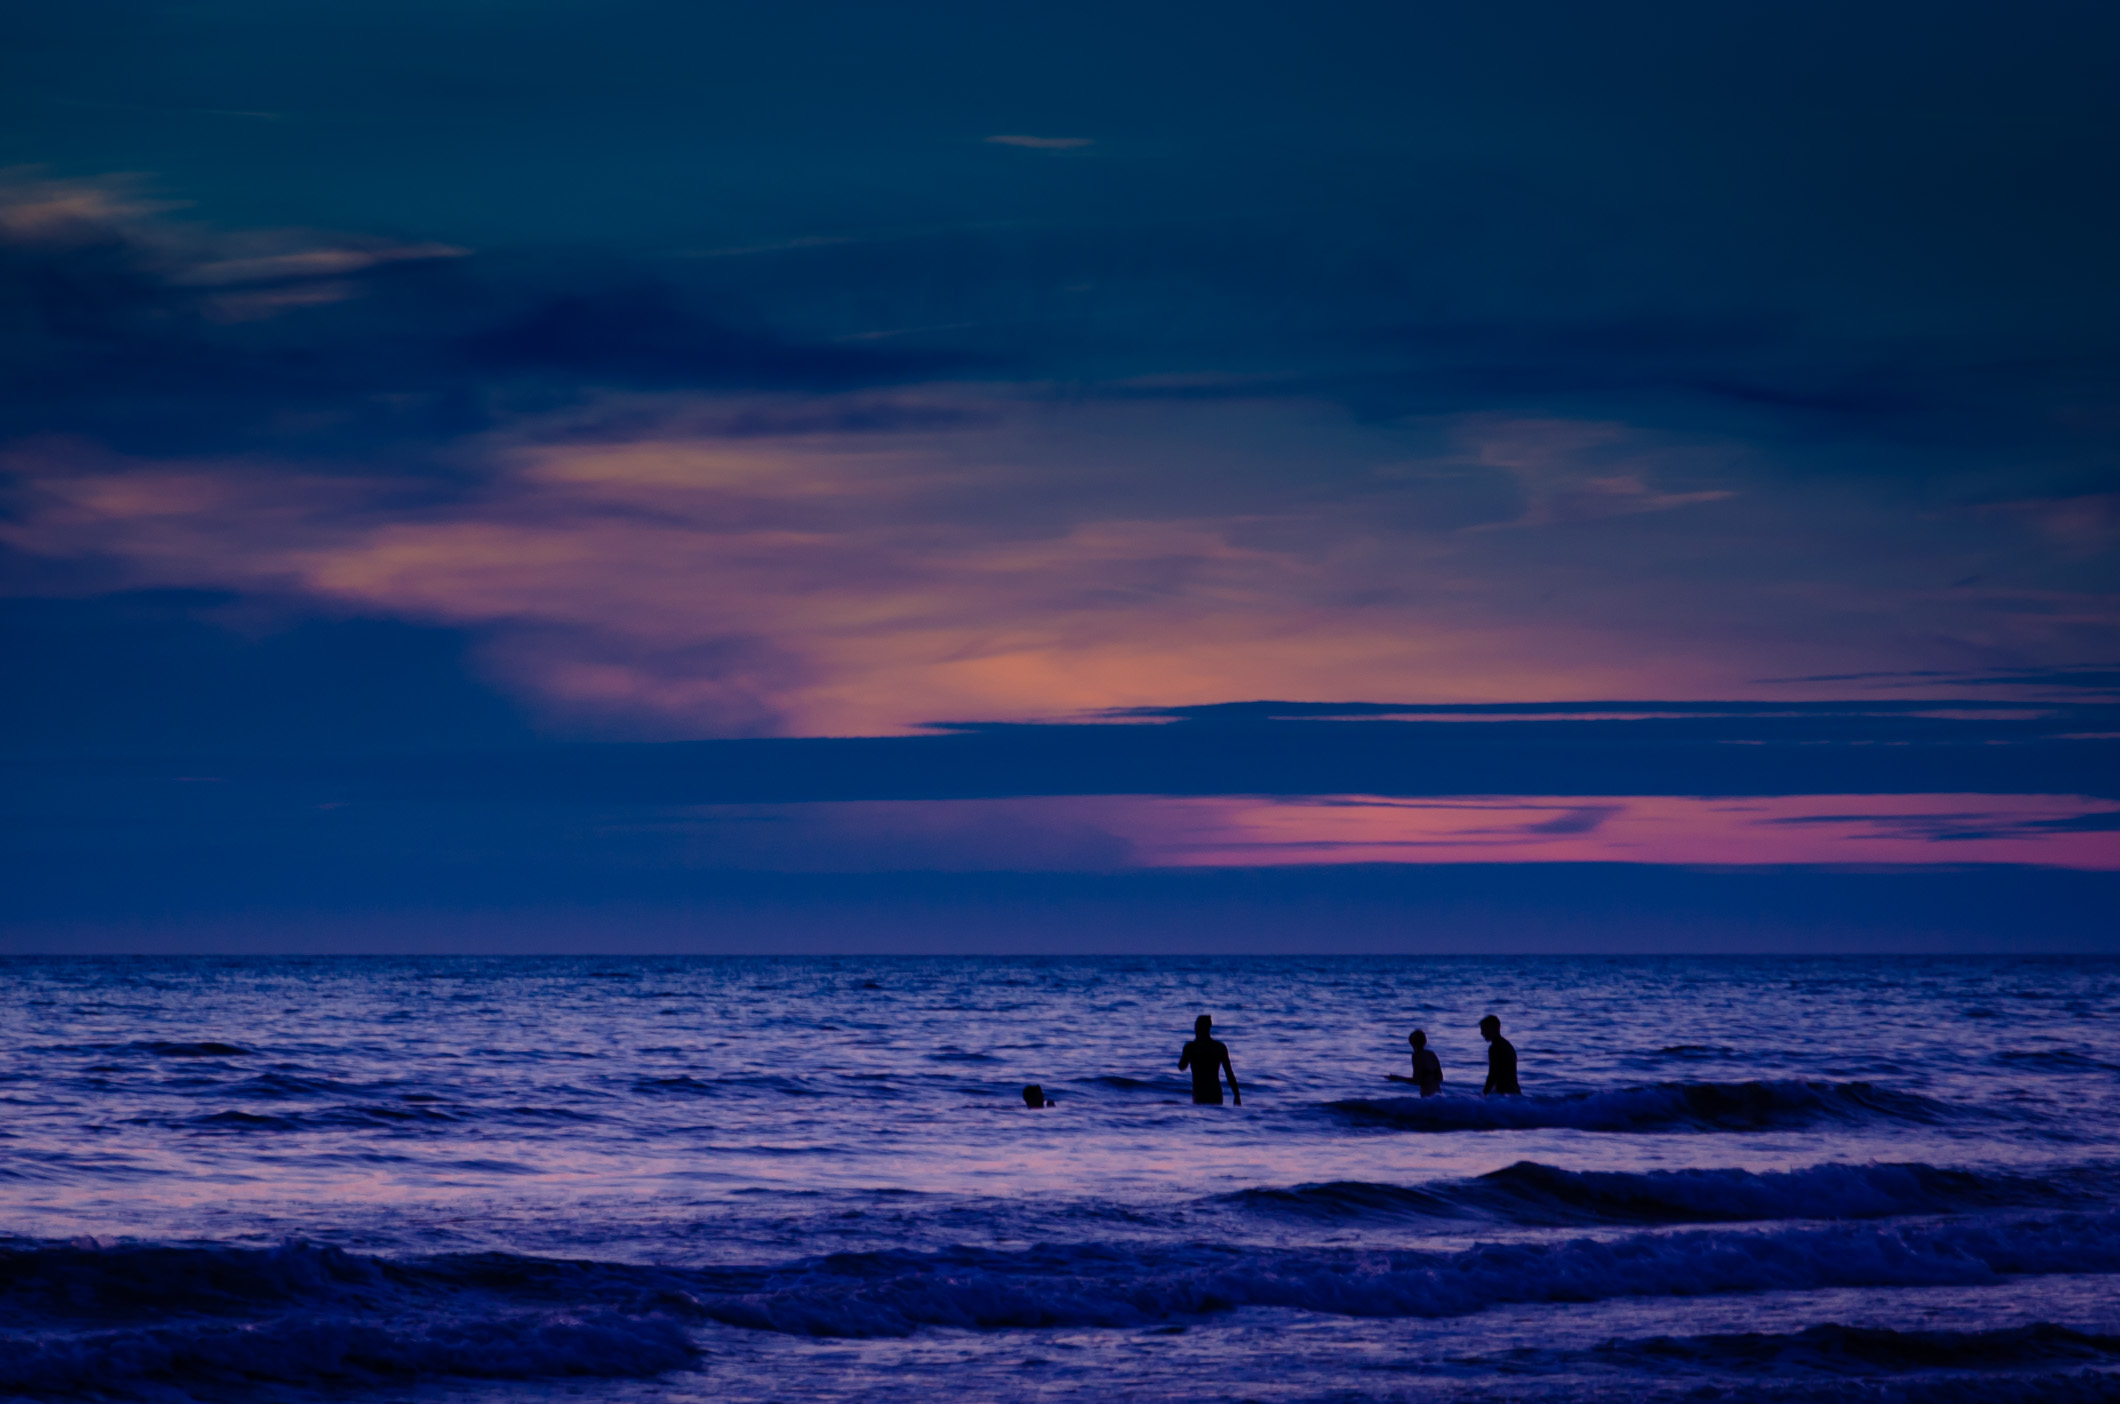 Silhouette of swimmers in the sea at sunset taken at Widemouth Bay Cornwall, UK on June 24, 2014.